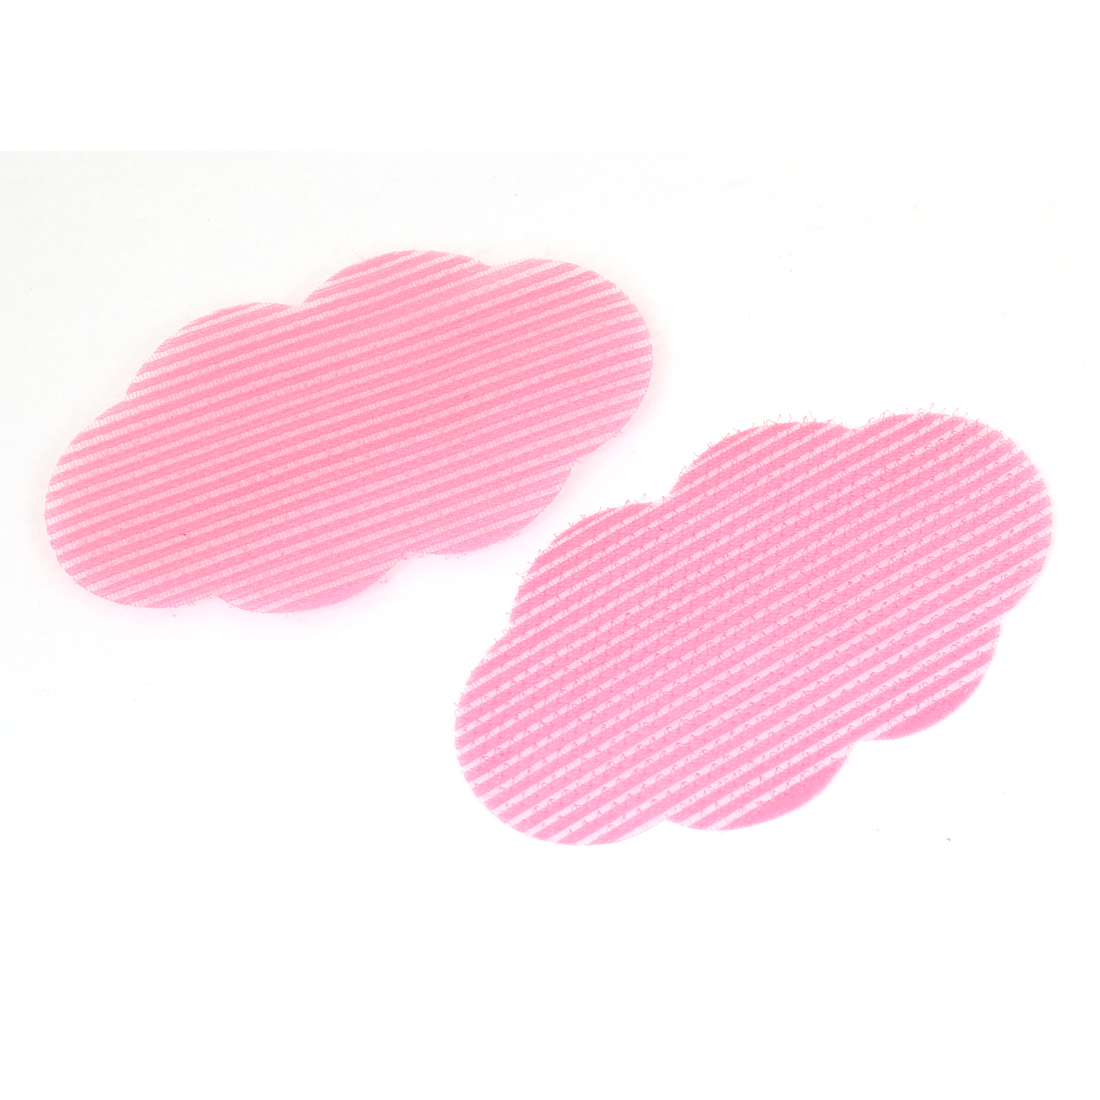 "2 Pieces Fuchsia Nylon Cloud Shape Foretop Hair Posted Magic Sheets 3.7"" Long"